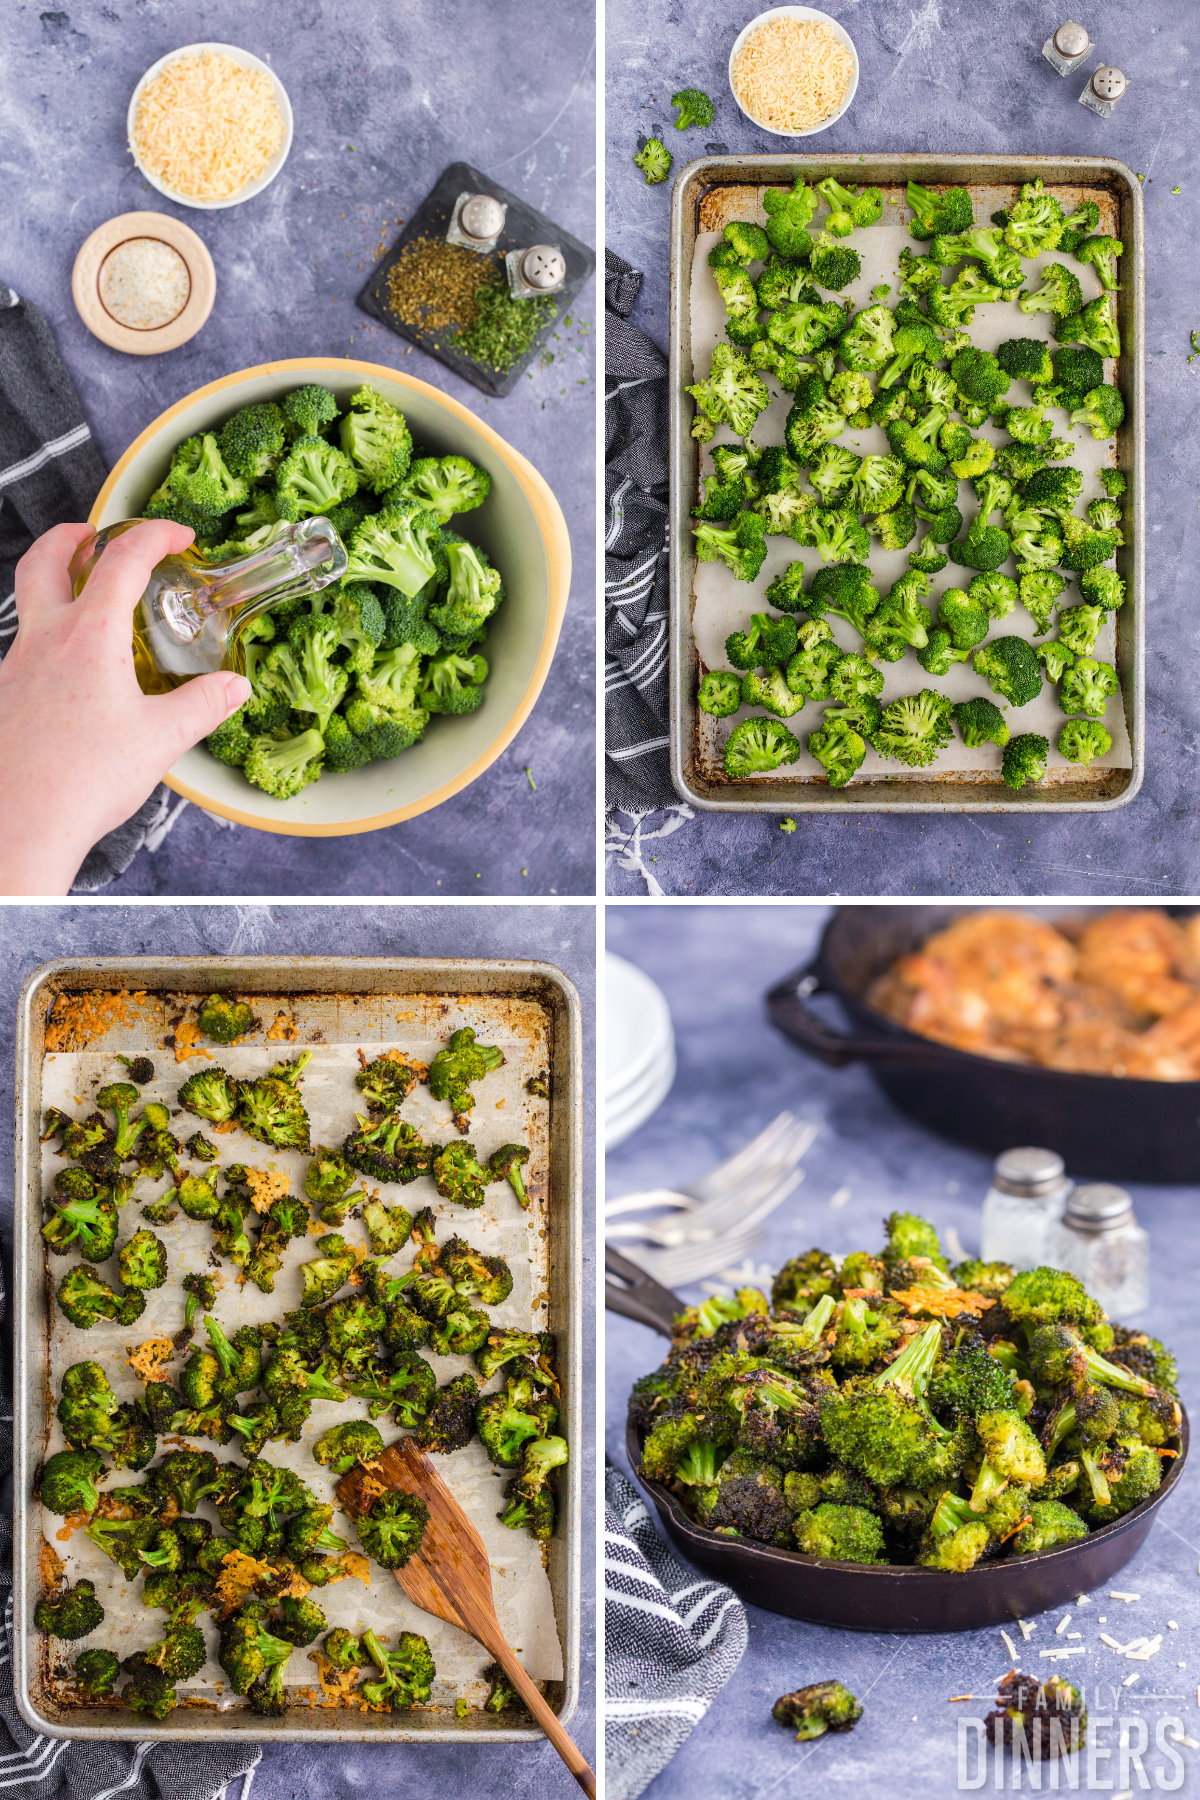 cook broccoli in oven instruction photo - image on left of silver sheet pan lined with parchment paper. Broccoli and crispy parmesan cheese are on top of parchment paper. Image on right: oven roasted broccoli is served in a black cast iron pan.